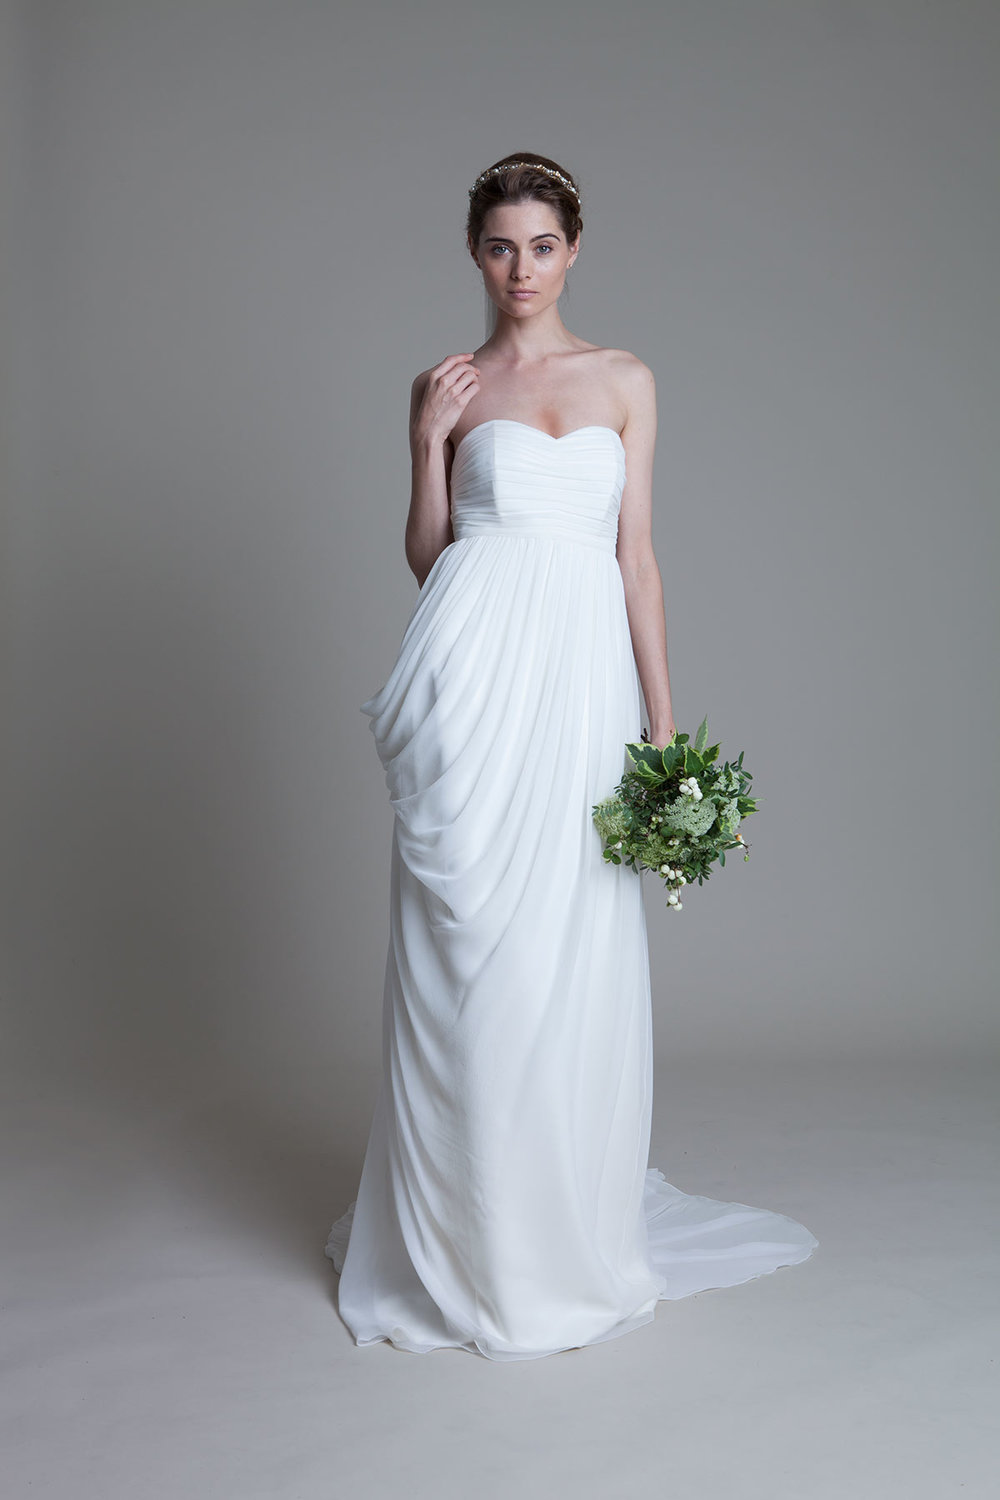 Georgina soft pleated chiffon boned bodice with a draped grecian chiffon skirt with train bridal wedding dress by Halfpenny London